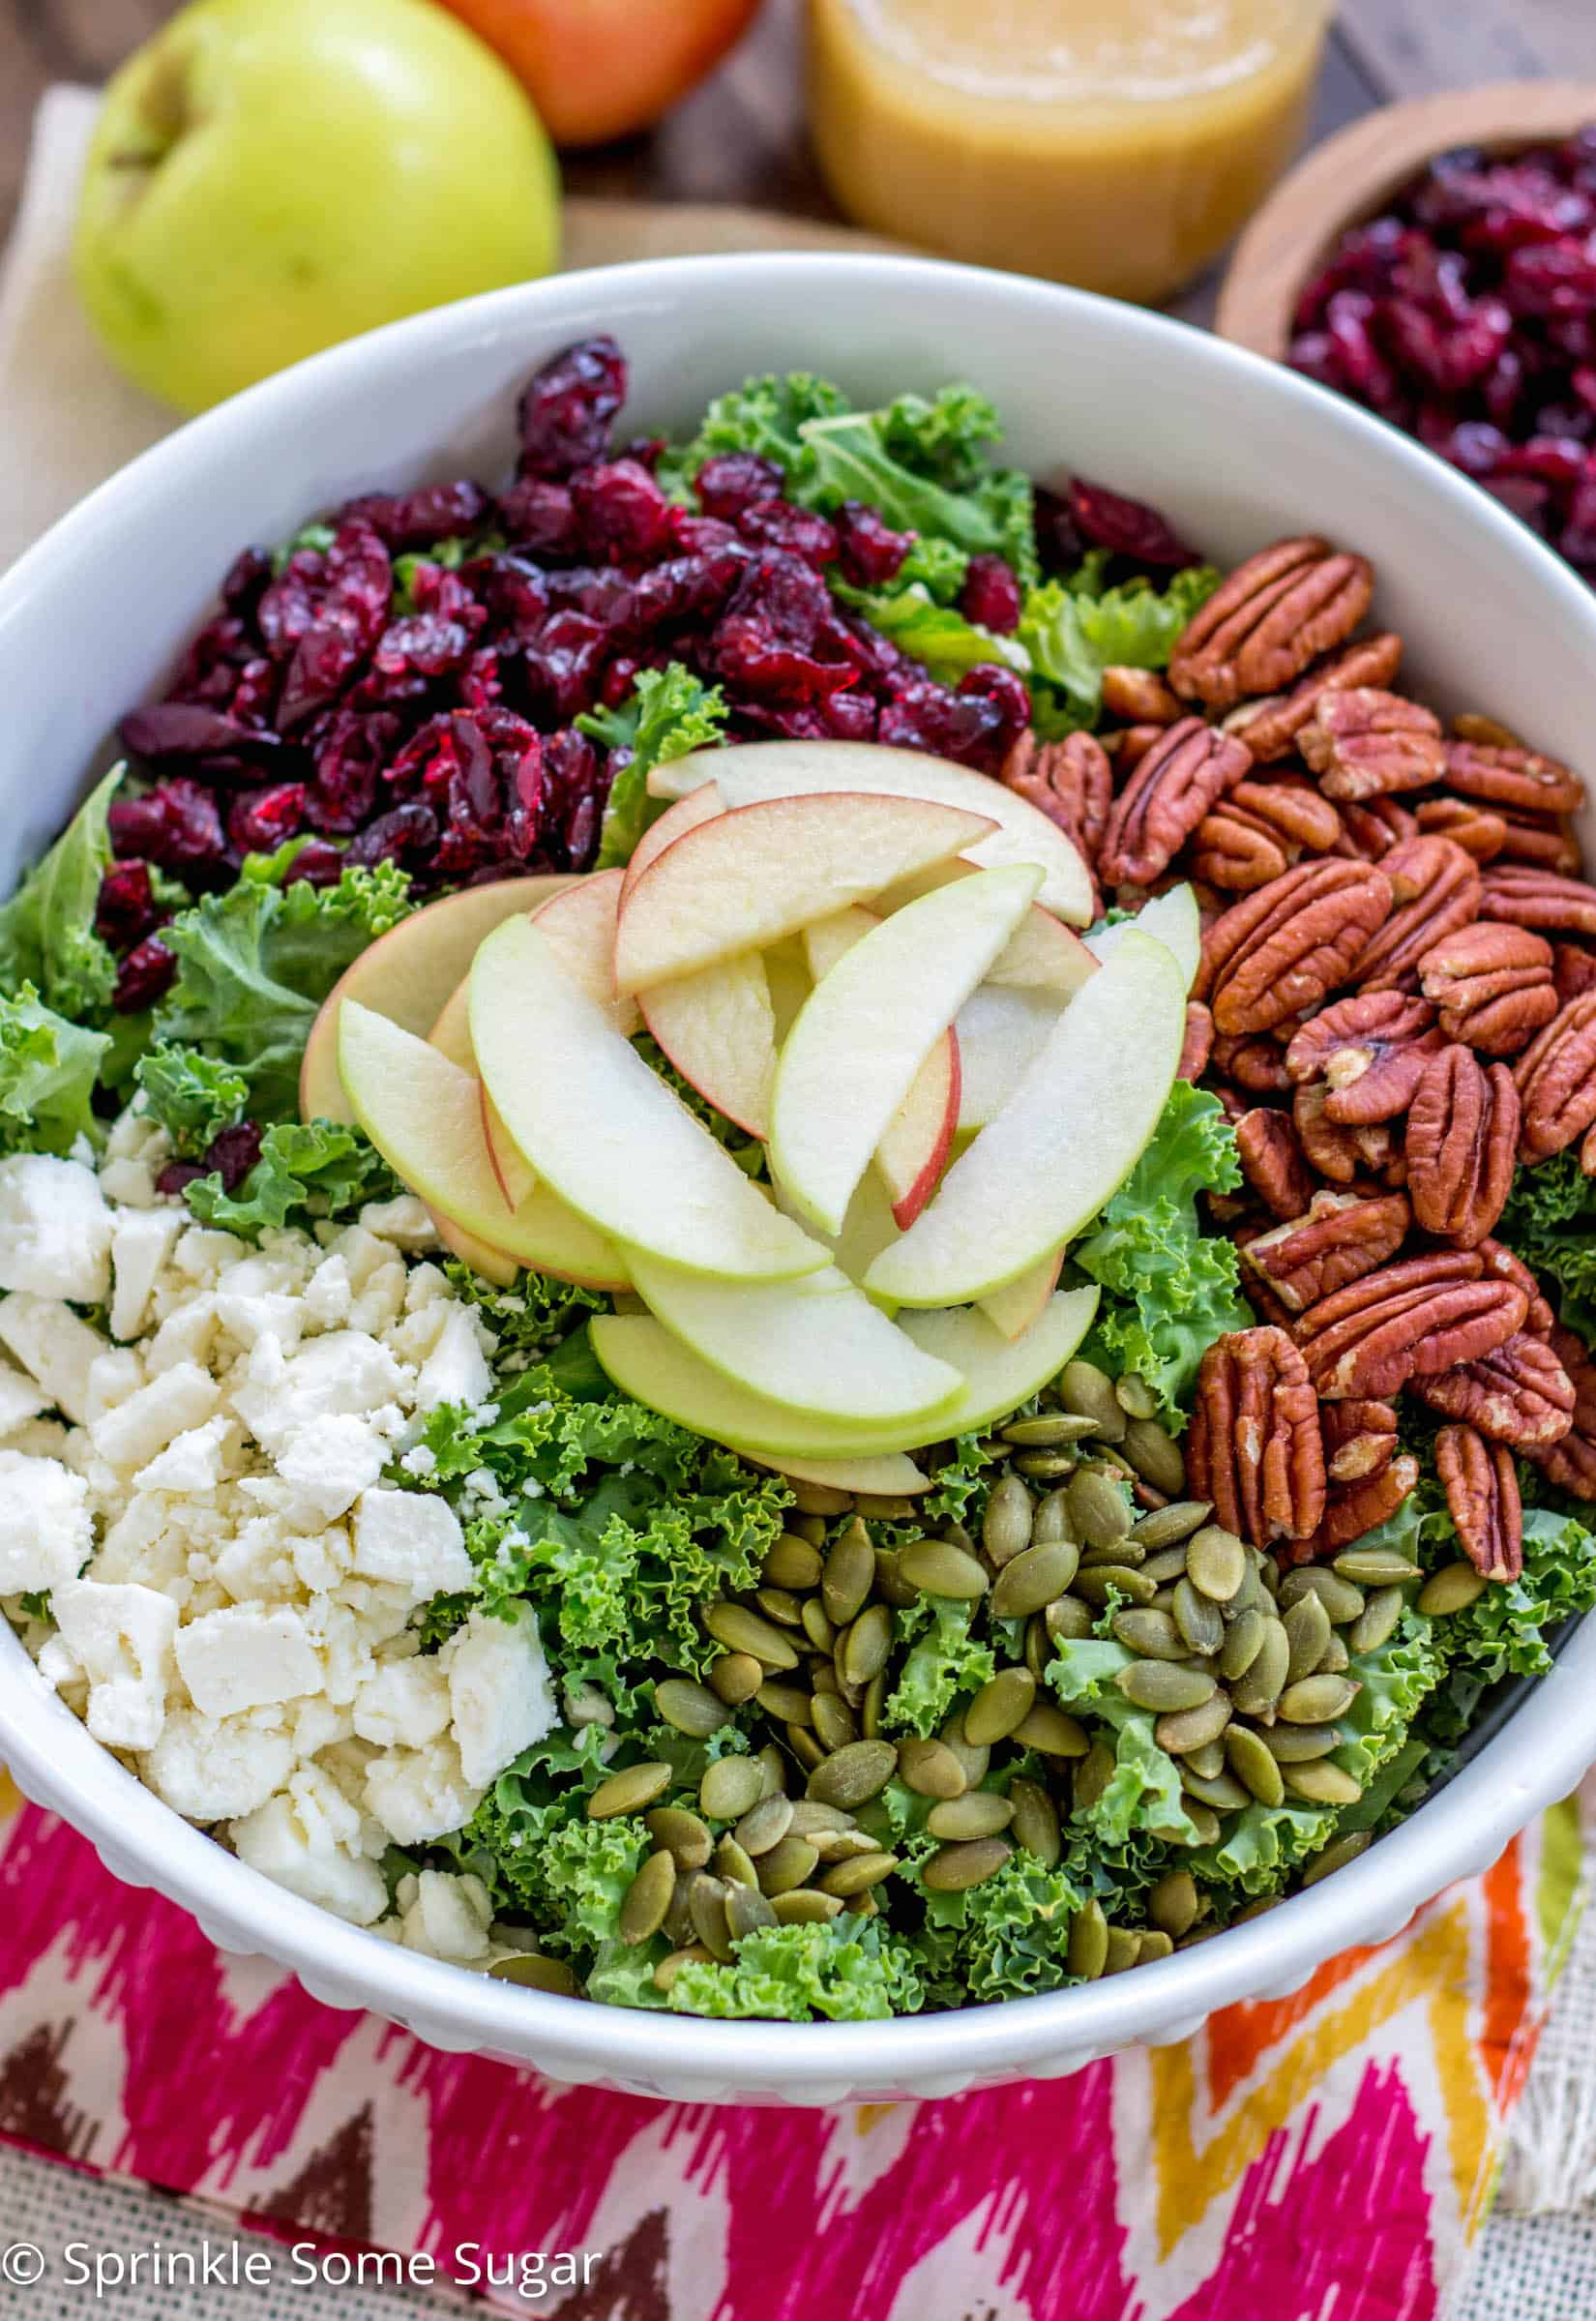 Fall harvest Cranberry Kale Salad - Kale salad loaded with dried cranberries, apples, pecans and topped with the most delicious apple cider dressing - the perfect salad for fall!